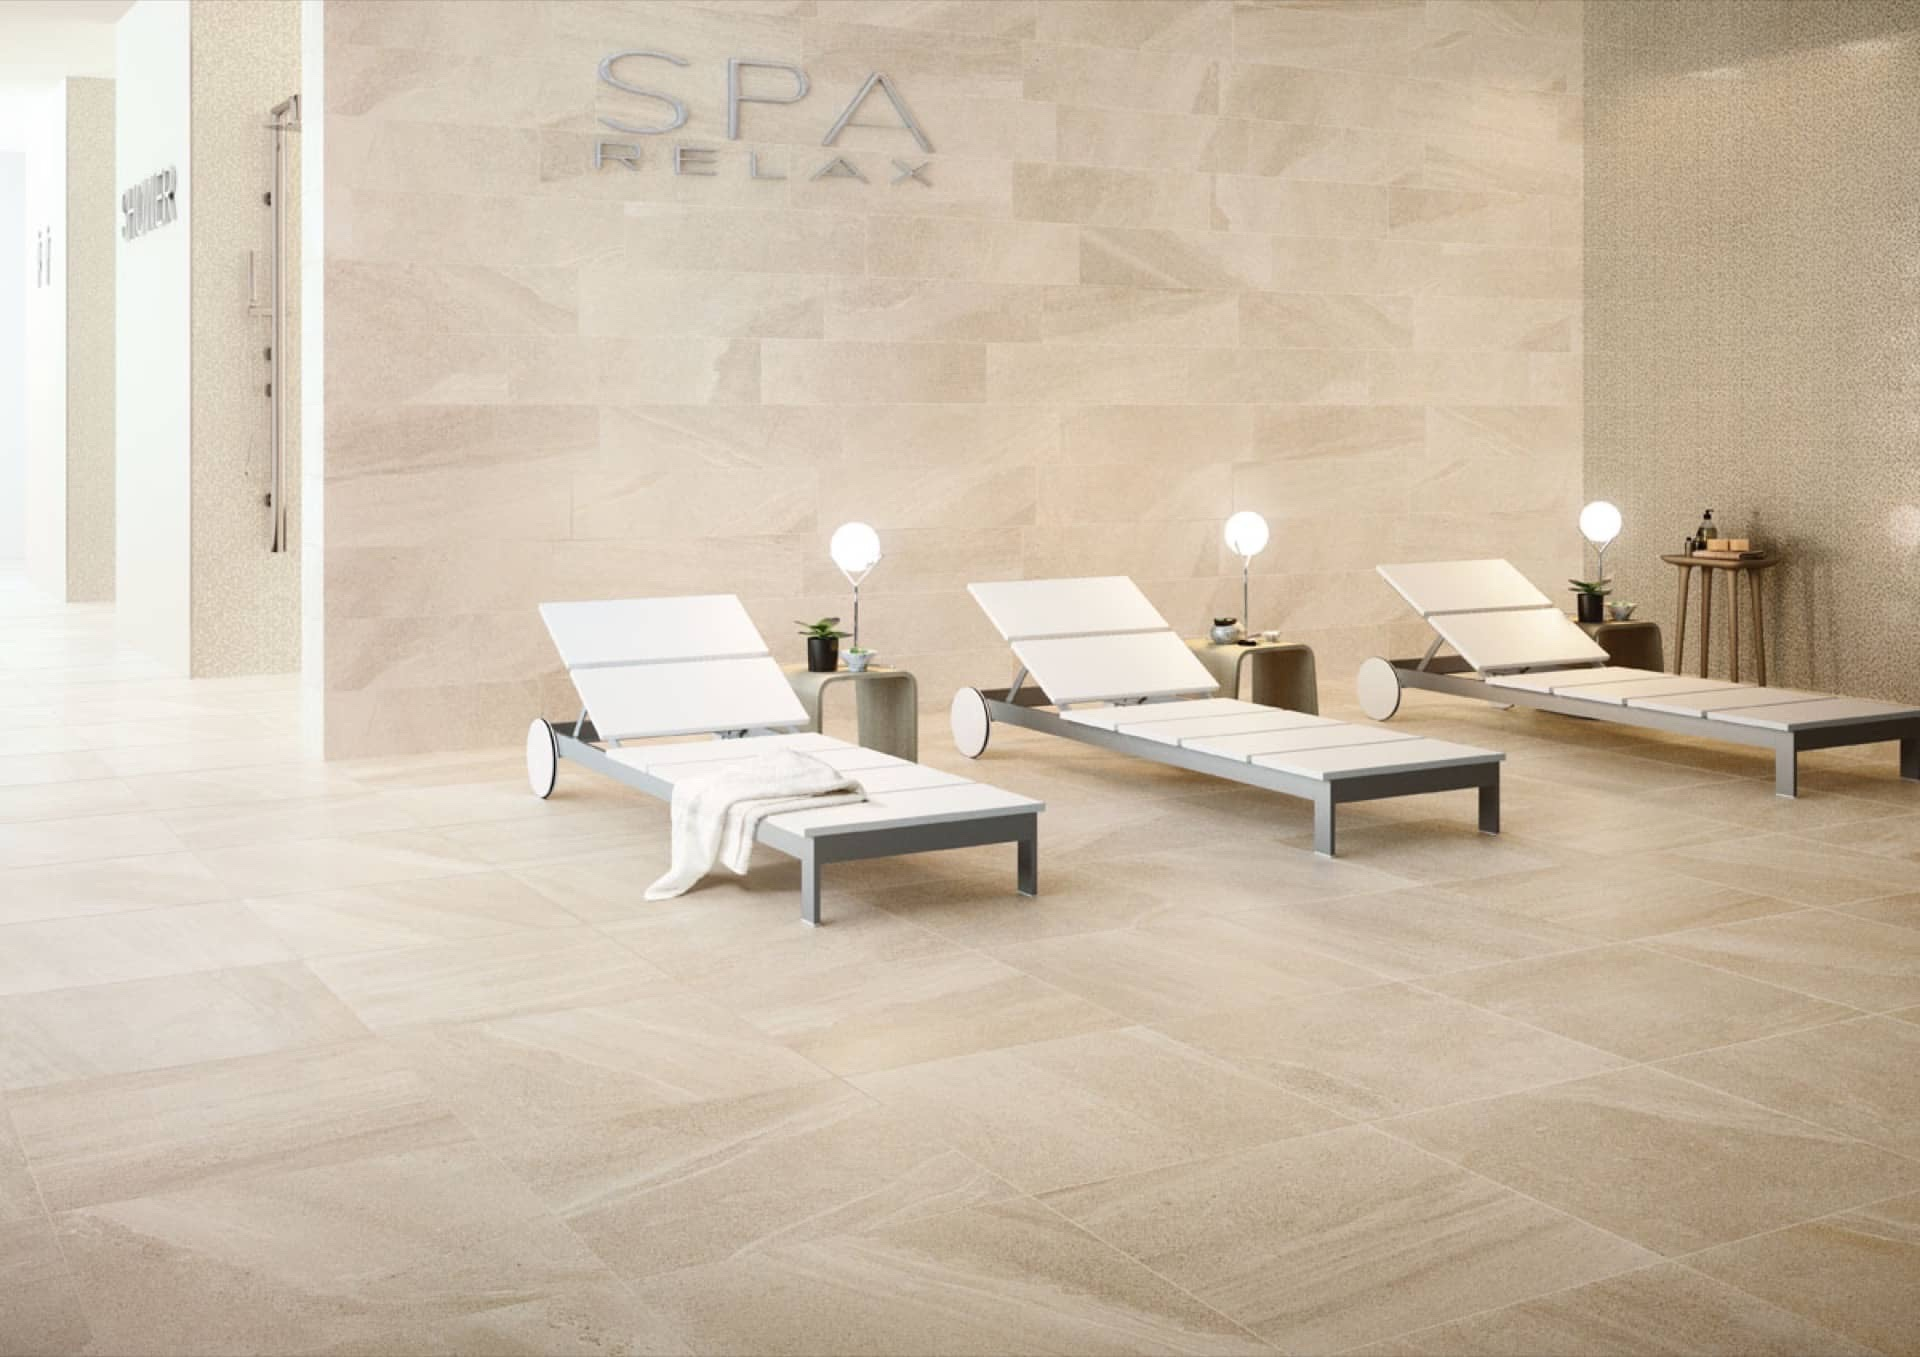 LAKESTONE_lake_ivory_spa_DD14